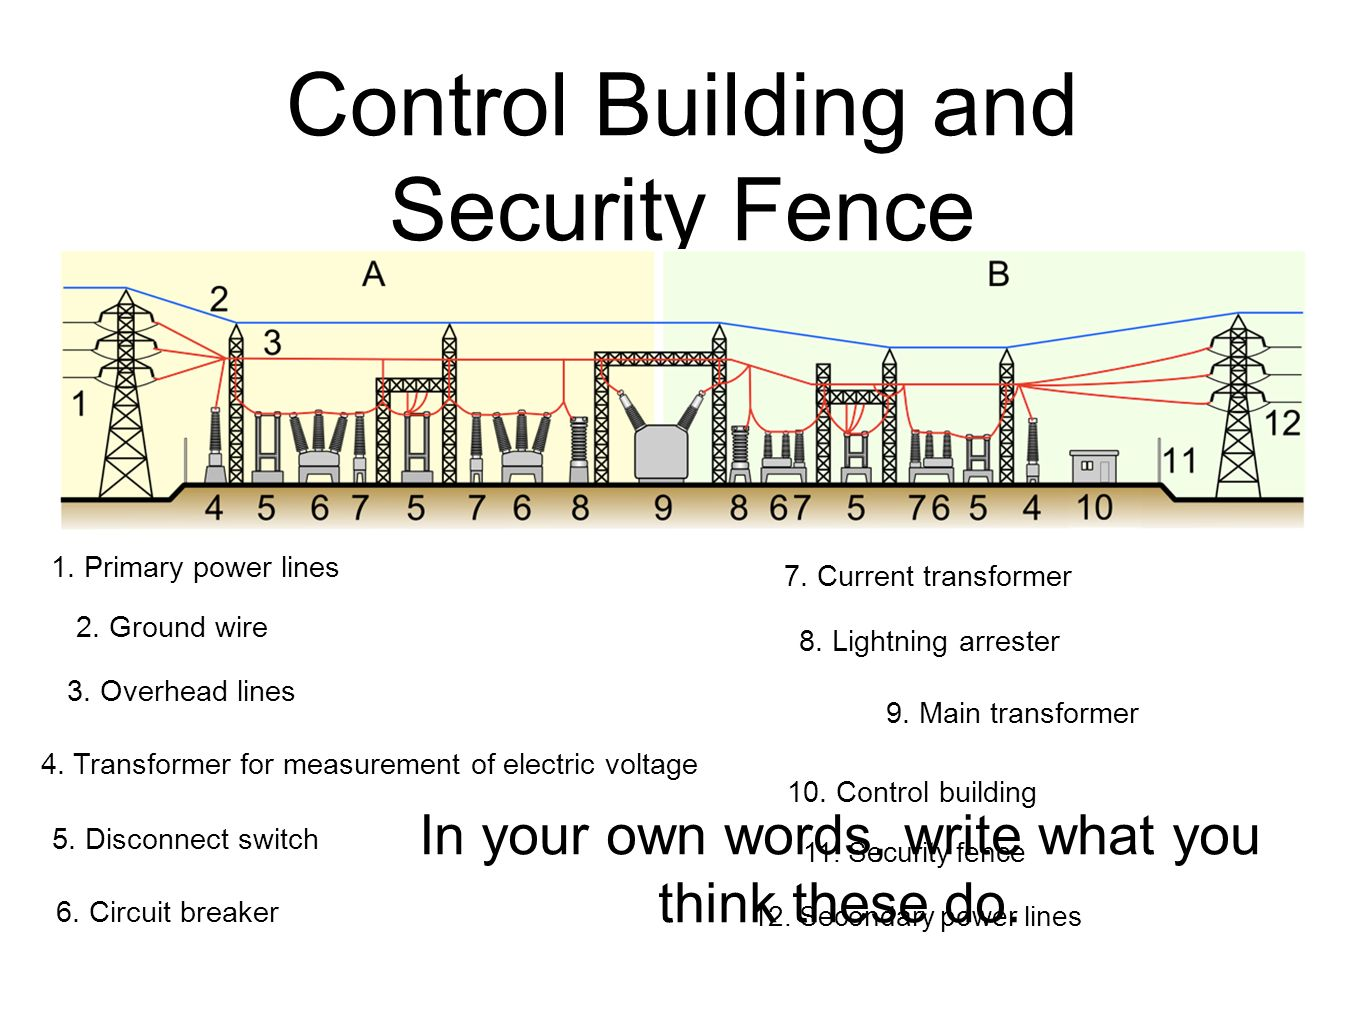 Control Building and Security Fence